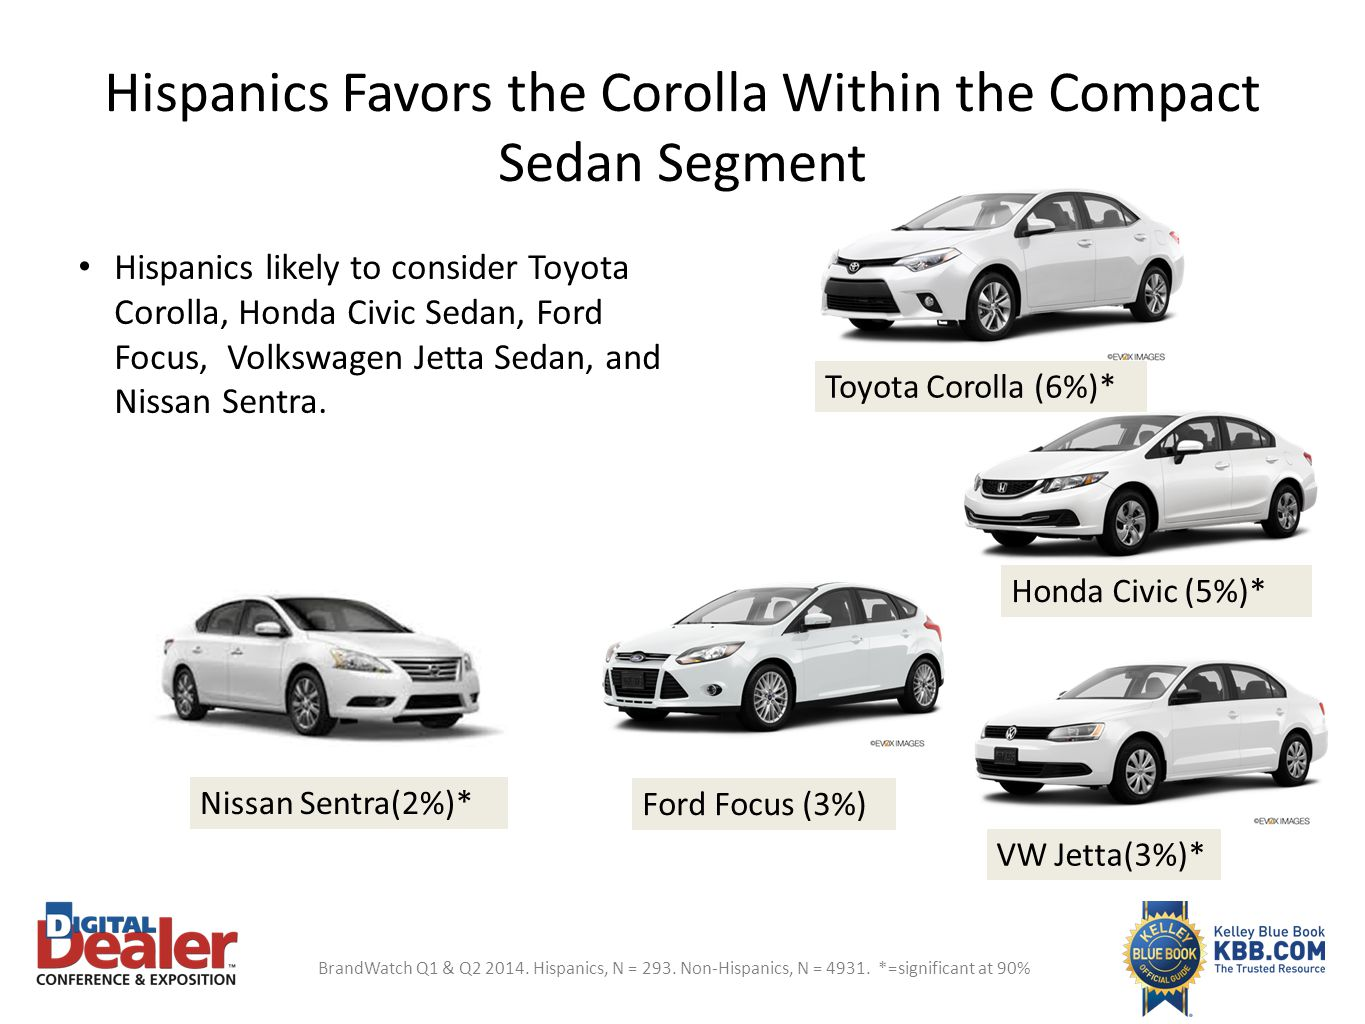 Hispanics Favors the Corolla Within the Compact Sedan Segment